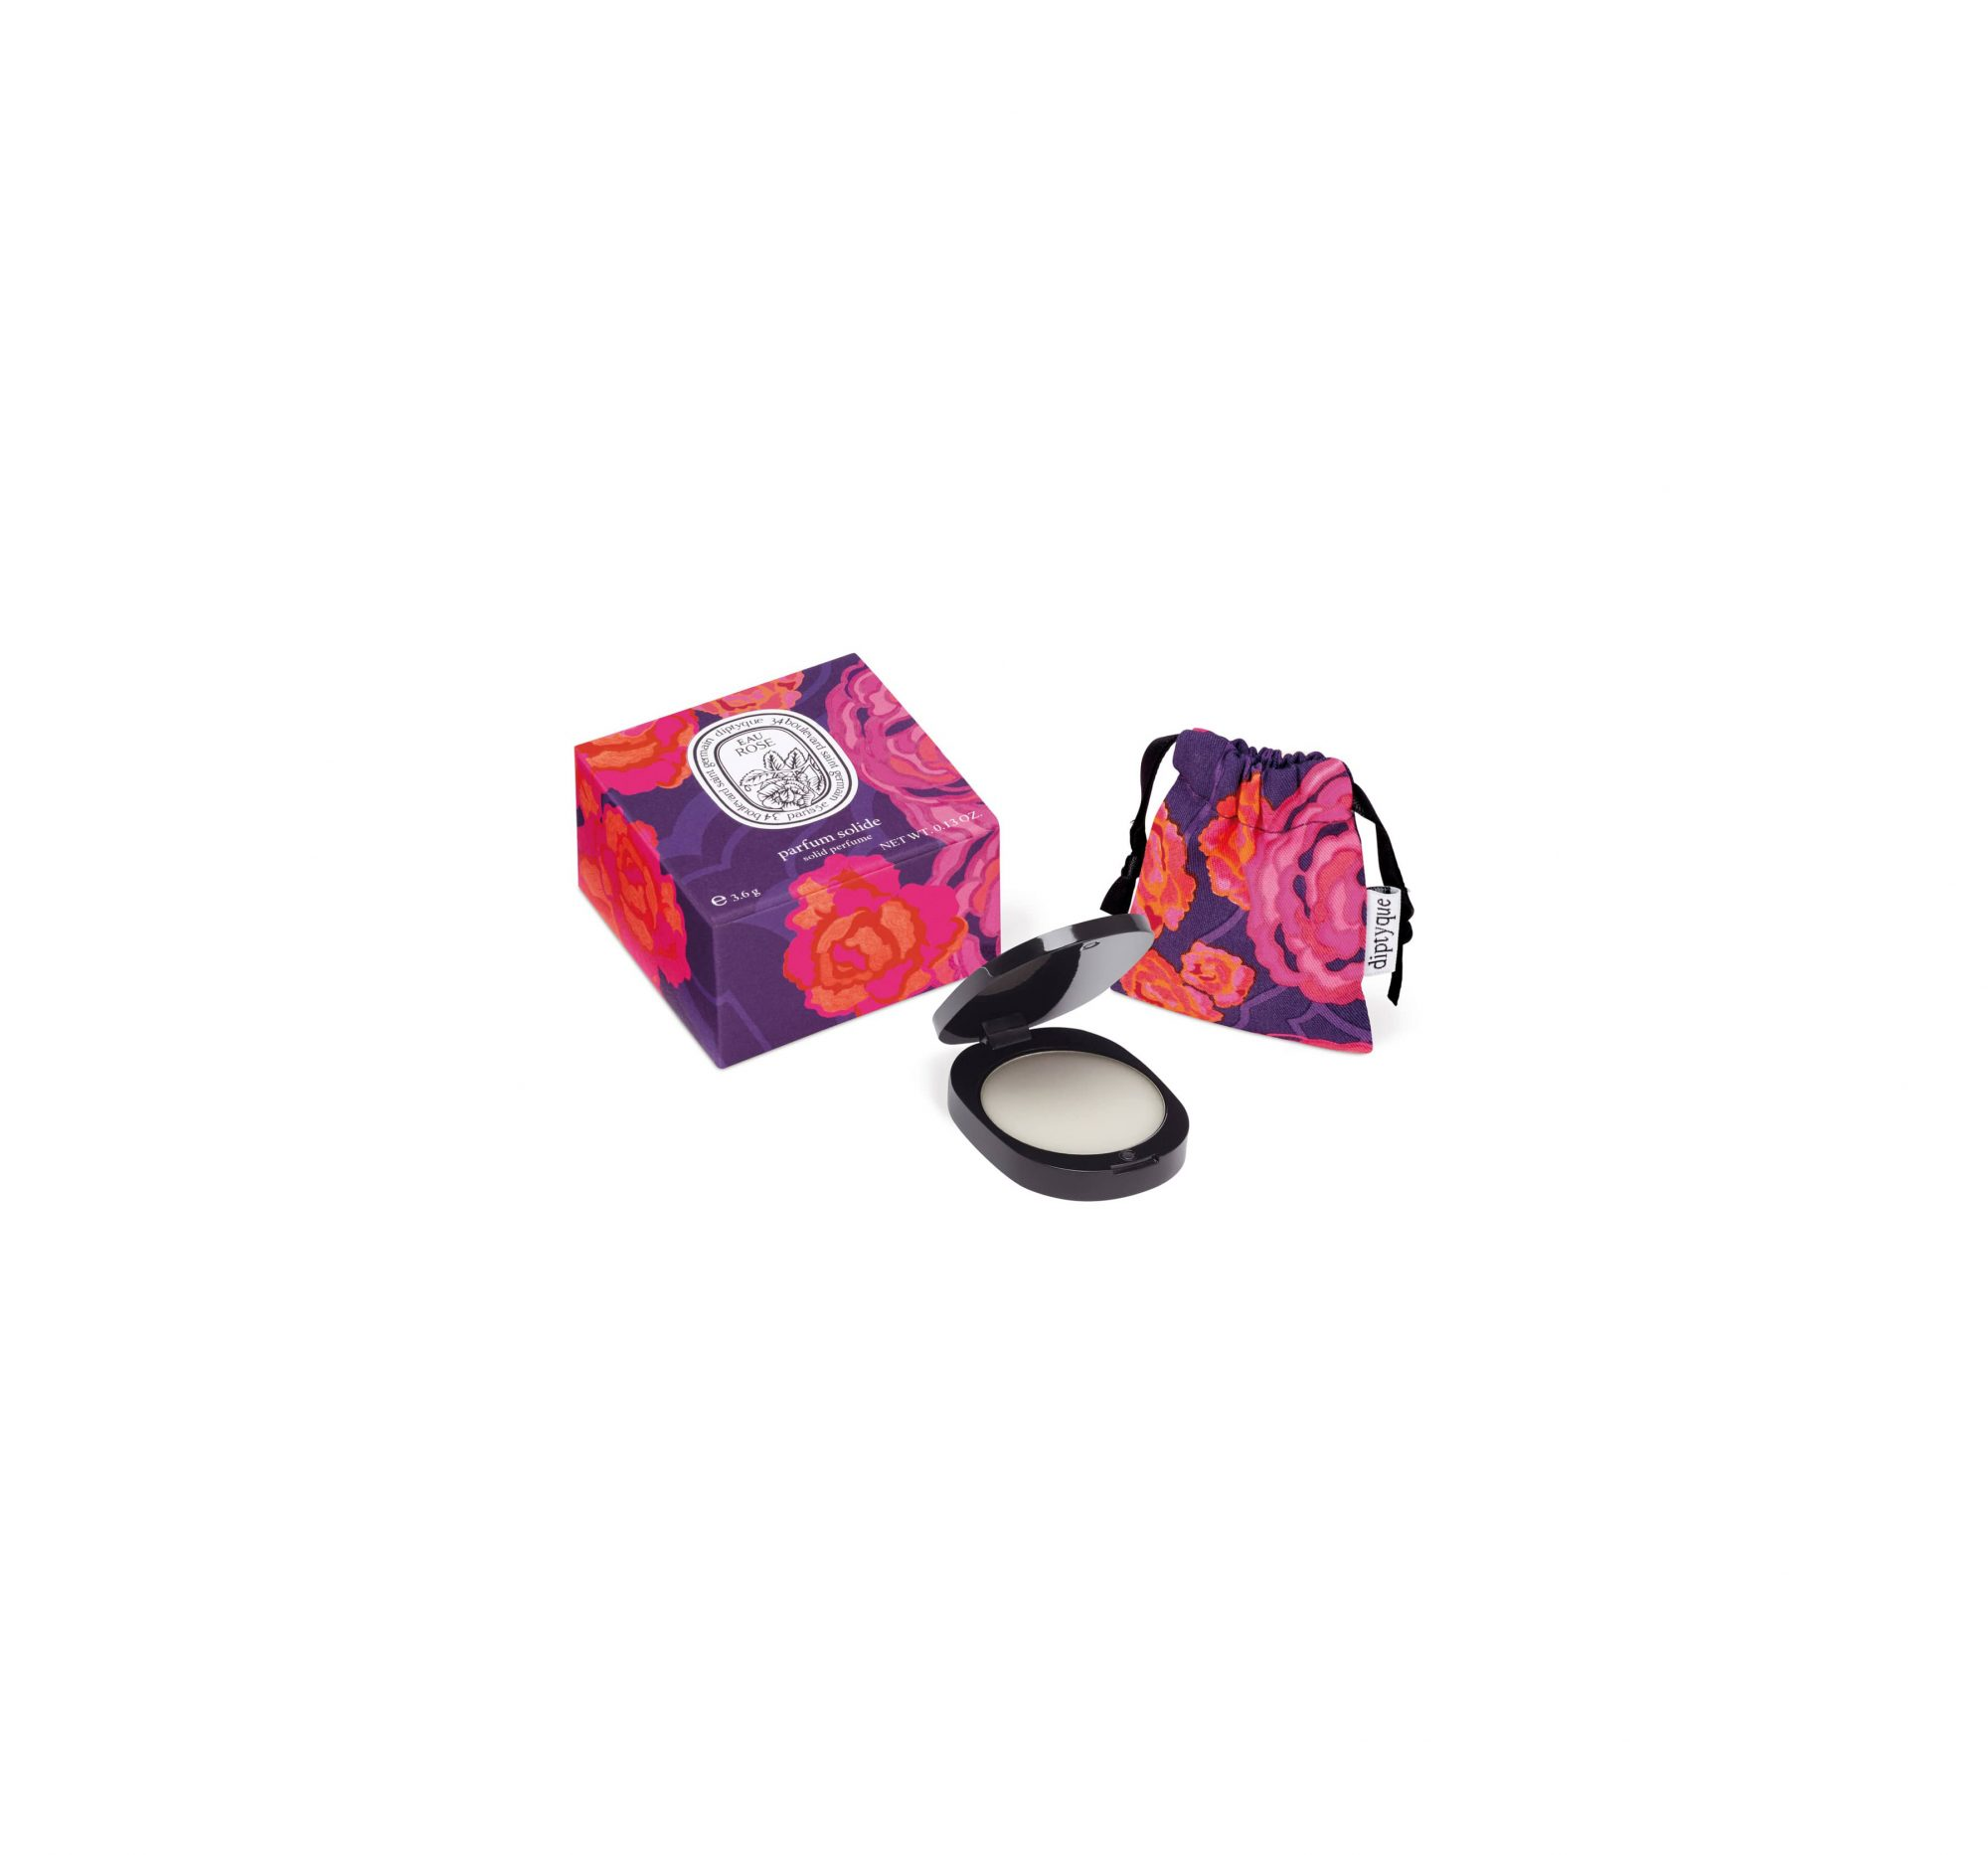 Diptyque Roses Eau Rose Solid Perfume